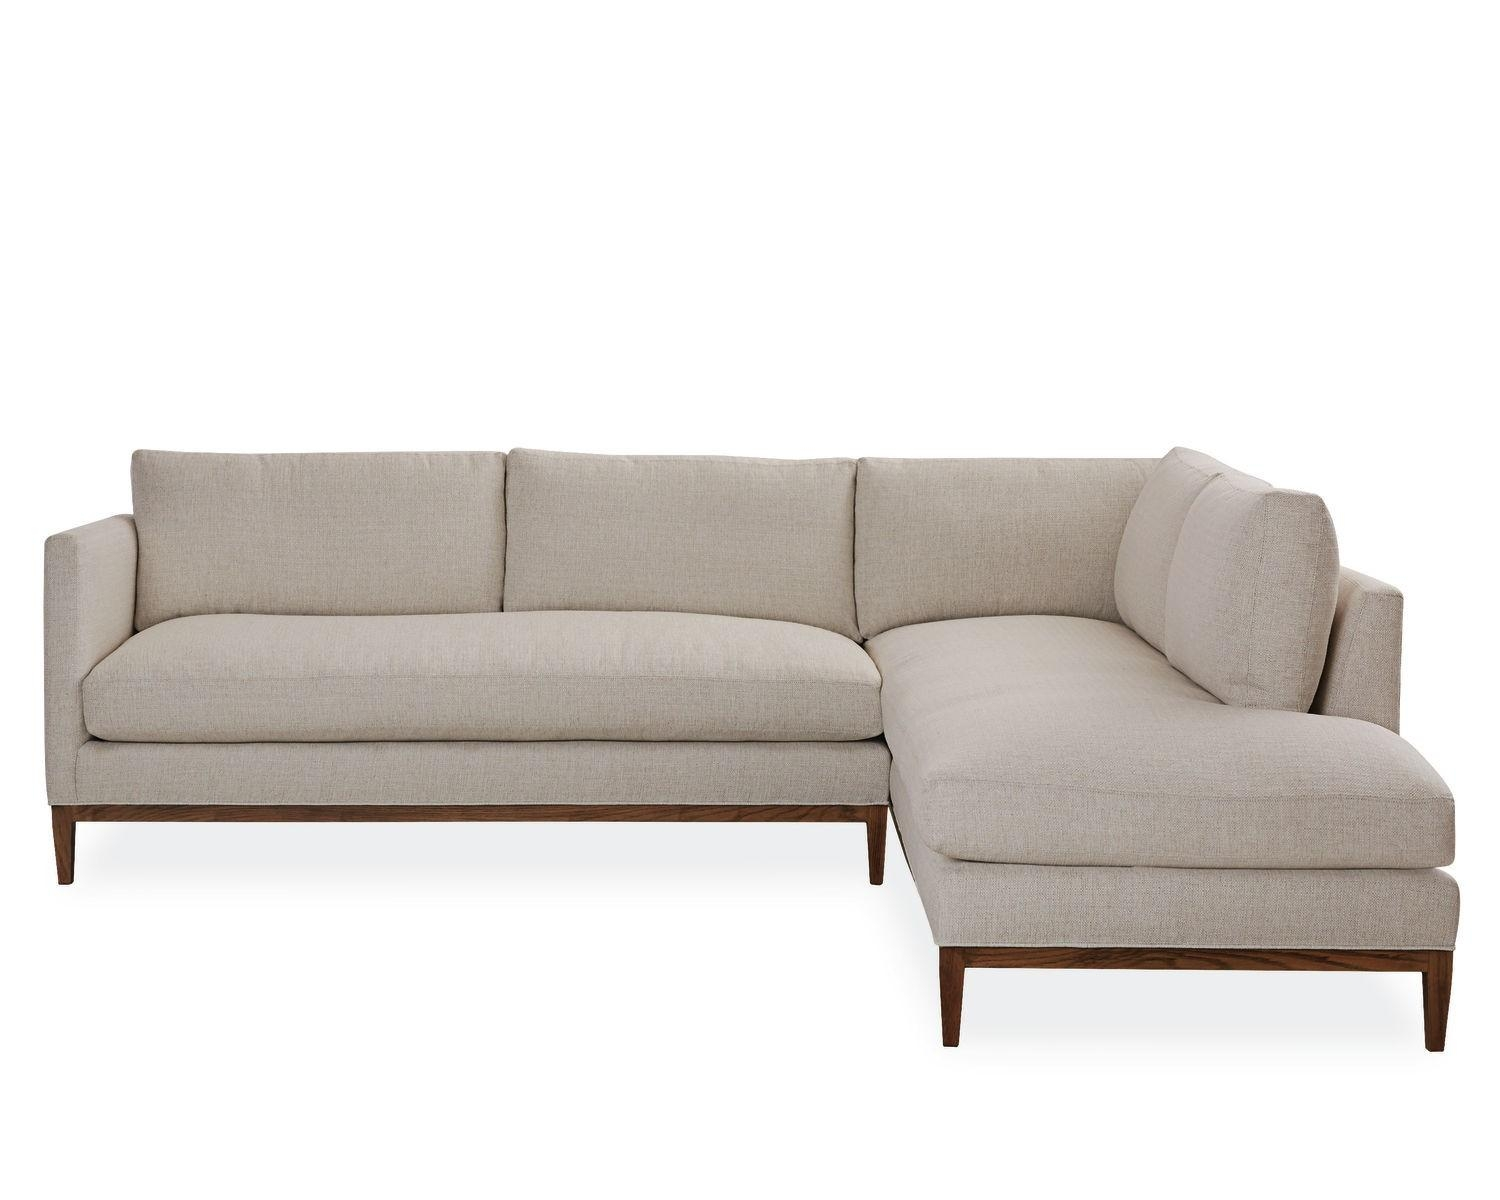 American Furniture | Palm Springs Chaise Sectional | Lee Industries For Lee Industries Sectional (Image 4 of 20)